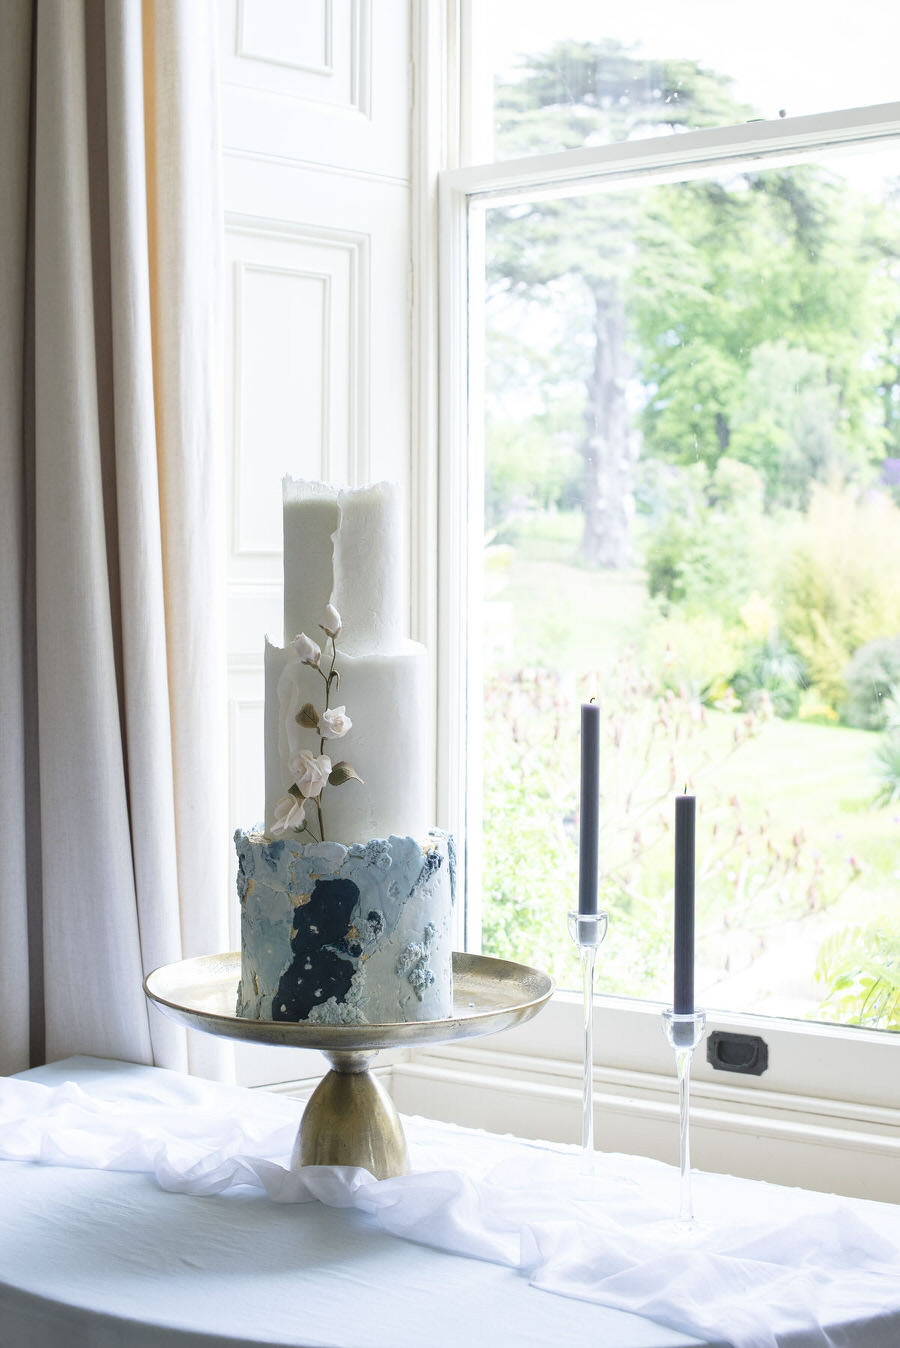 Pynes House wedding styling ideas with Ailsa Munro, Sarah Shuttle and Lottie Ettling PHotography (18)